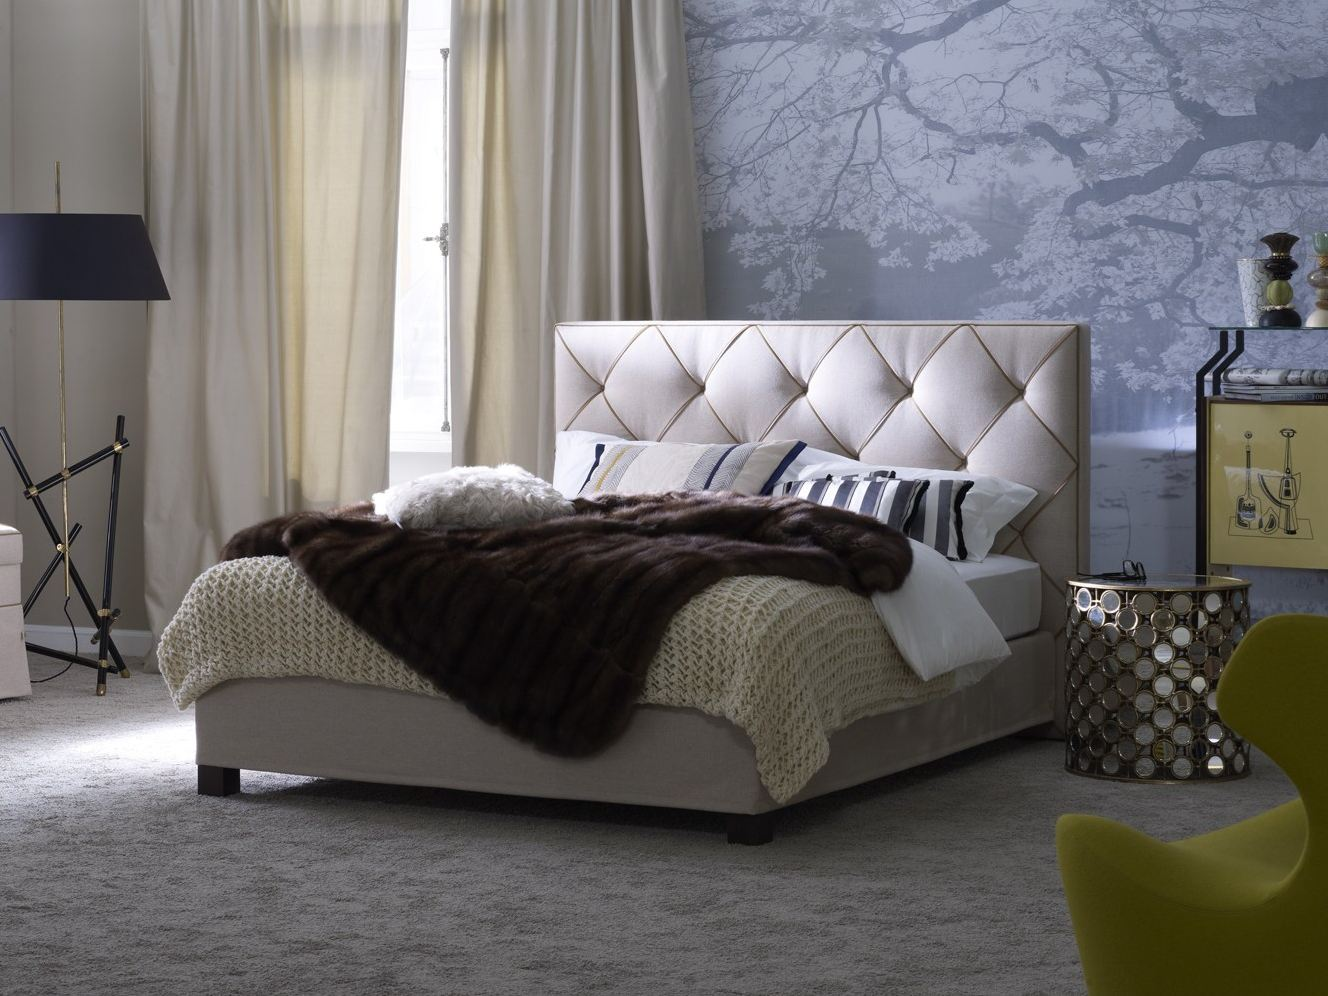 Basis 18 opal plus by schramm werkst tten - Kangoeroe bed basis ...